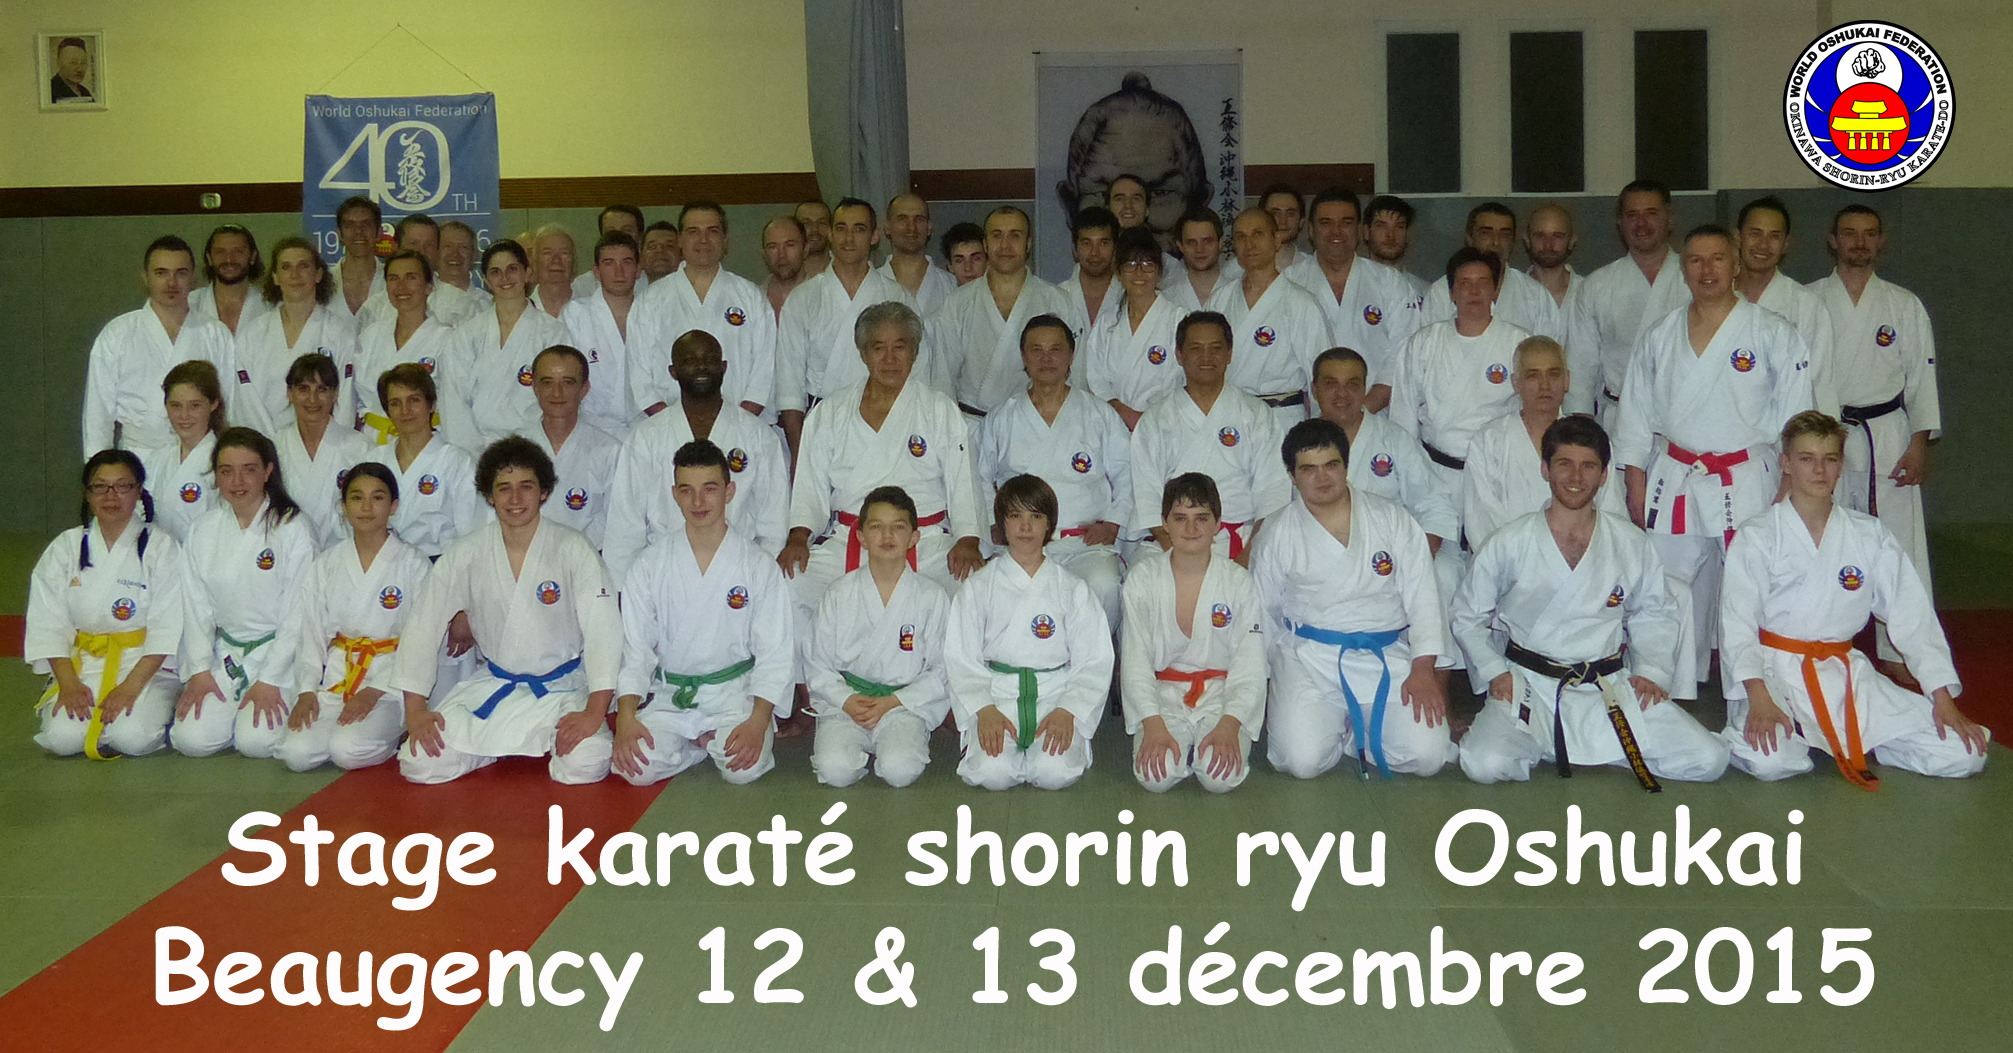 Stage de Karate Shorin Ryu Oshukai à Beaugency